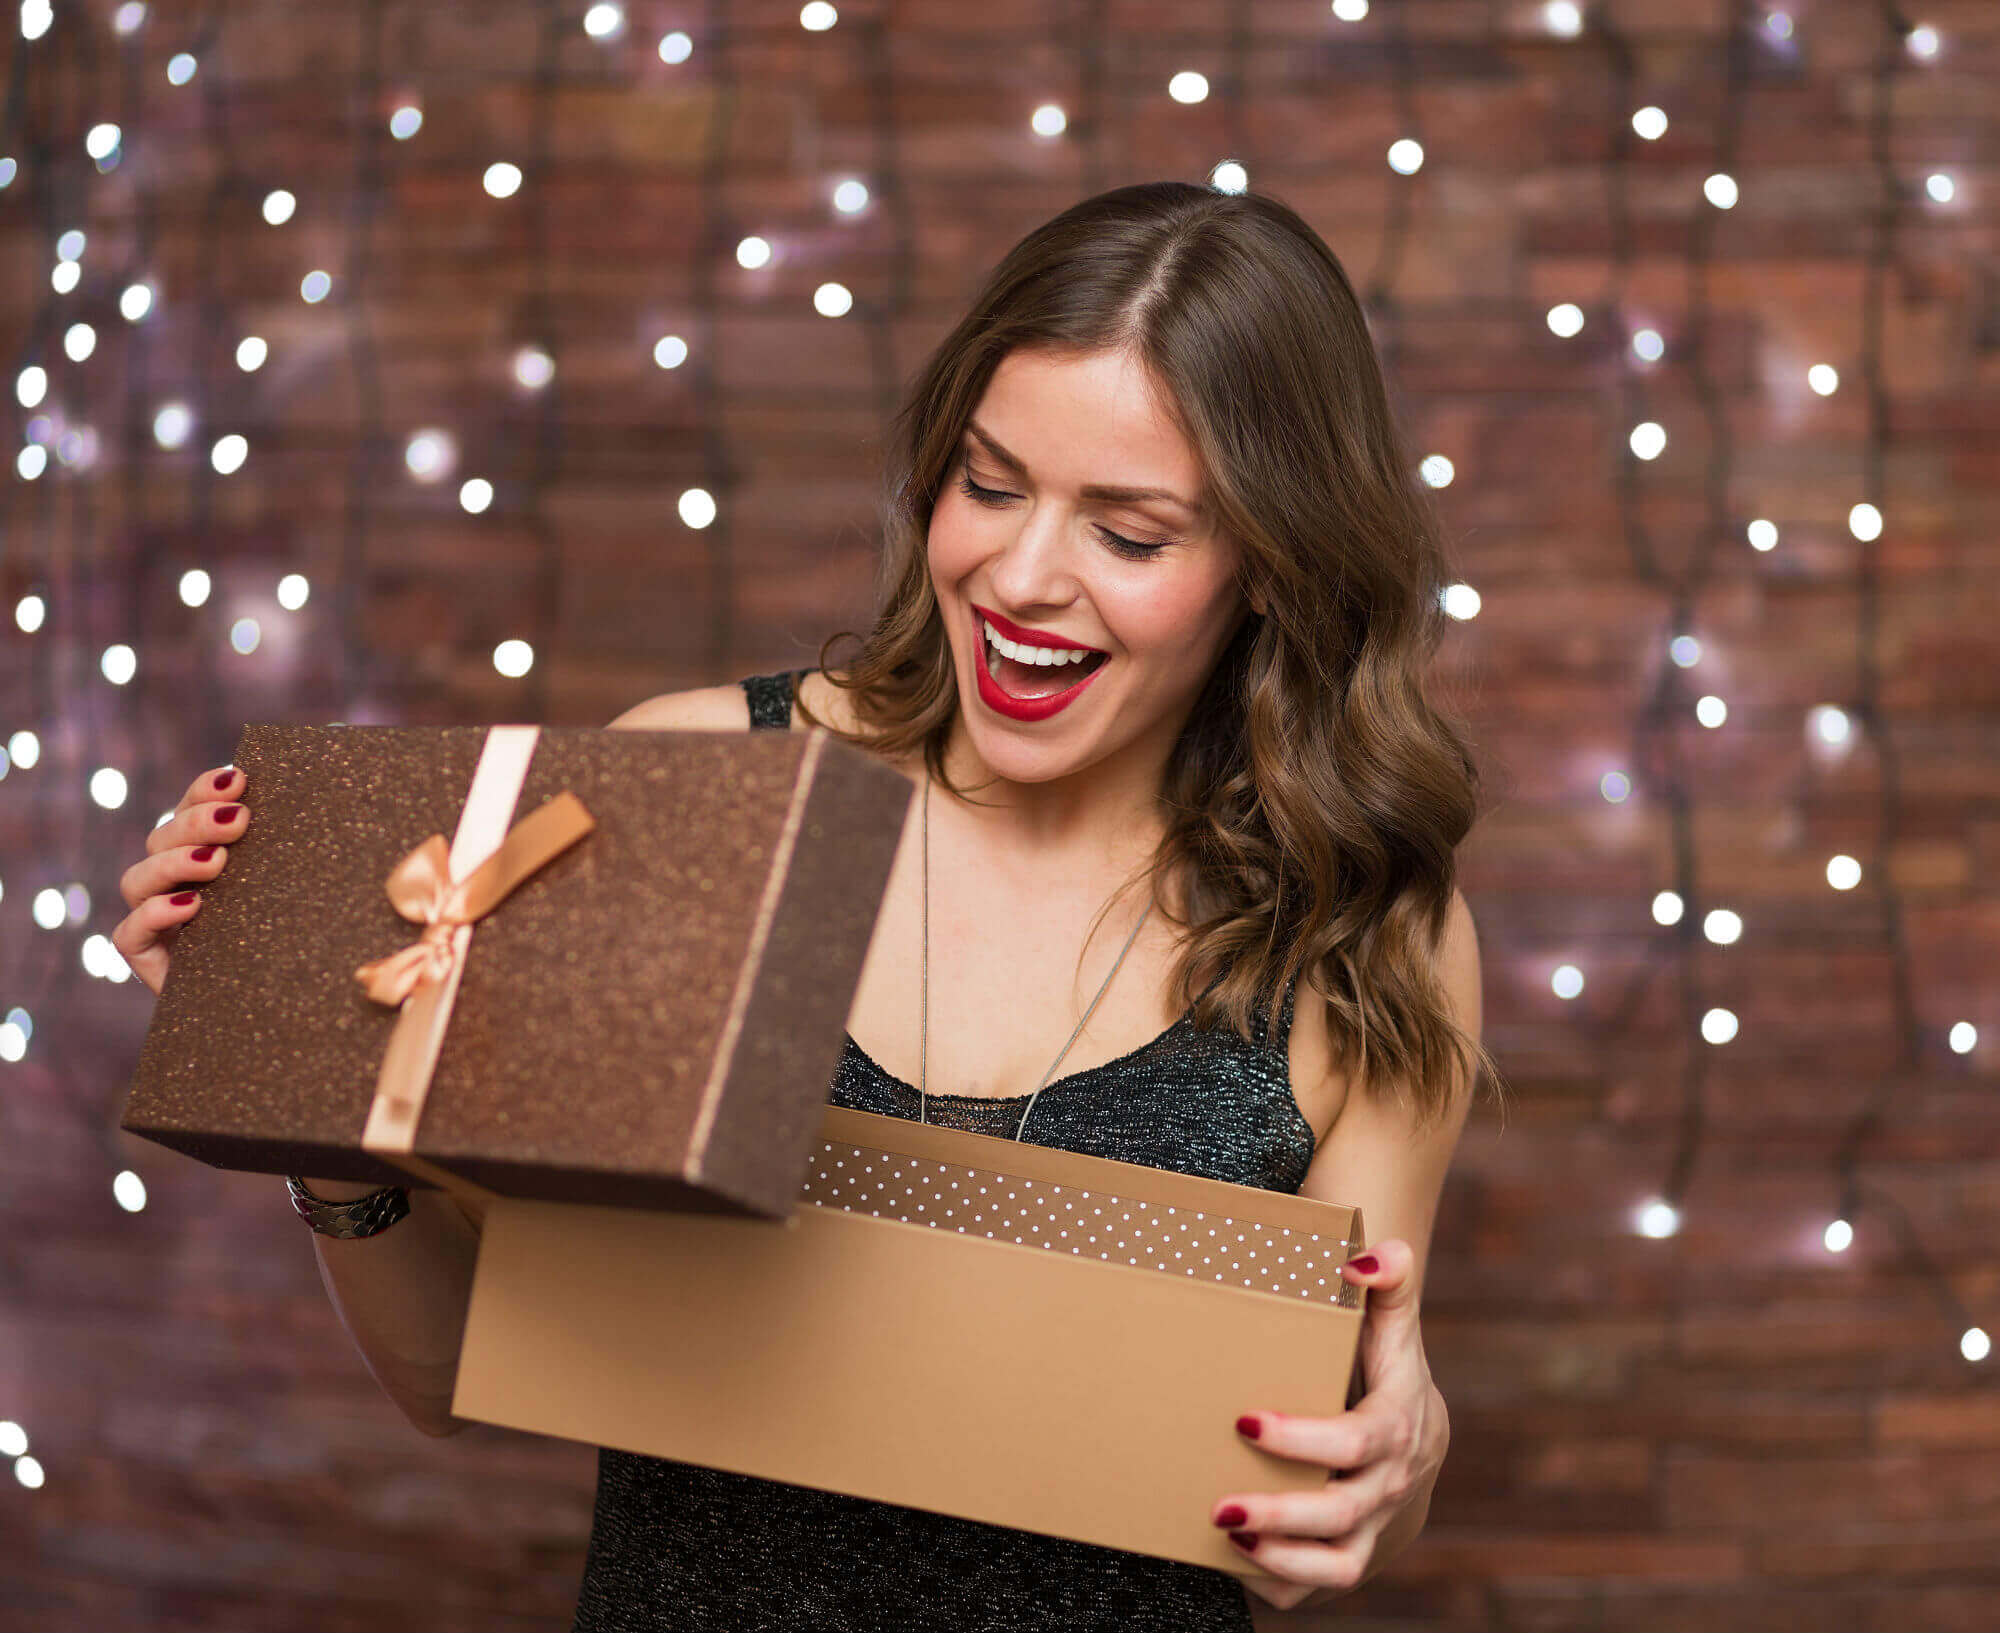 6 Beauty Gift Ideas to Give Out this Holiday!